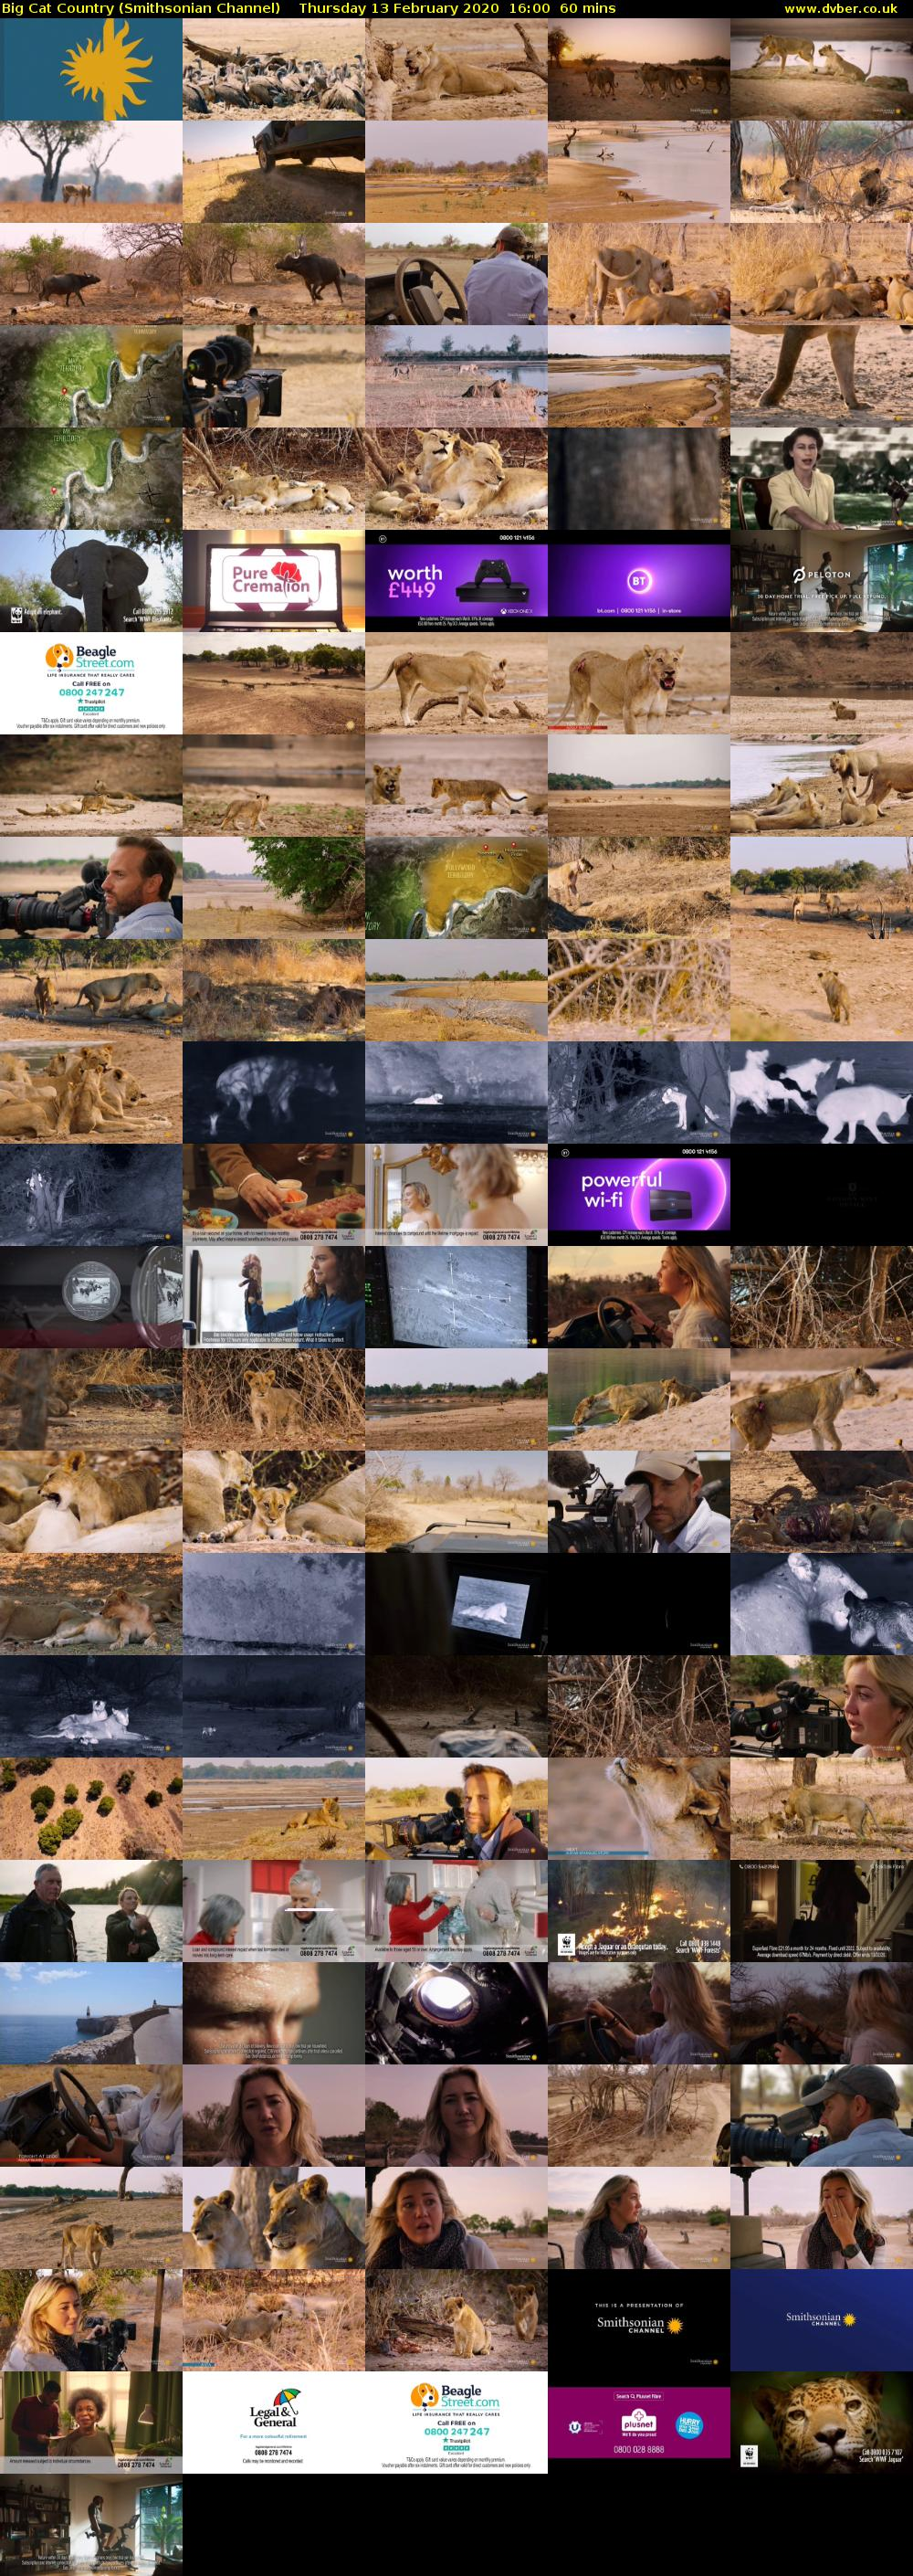 Big Cat Country (Smithsonian Channel) Thursday 13 February 2020 16:00 - 17:00